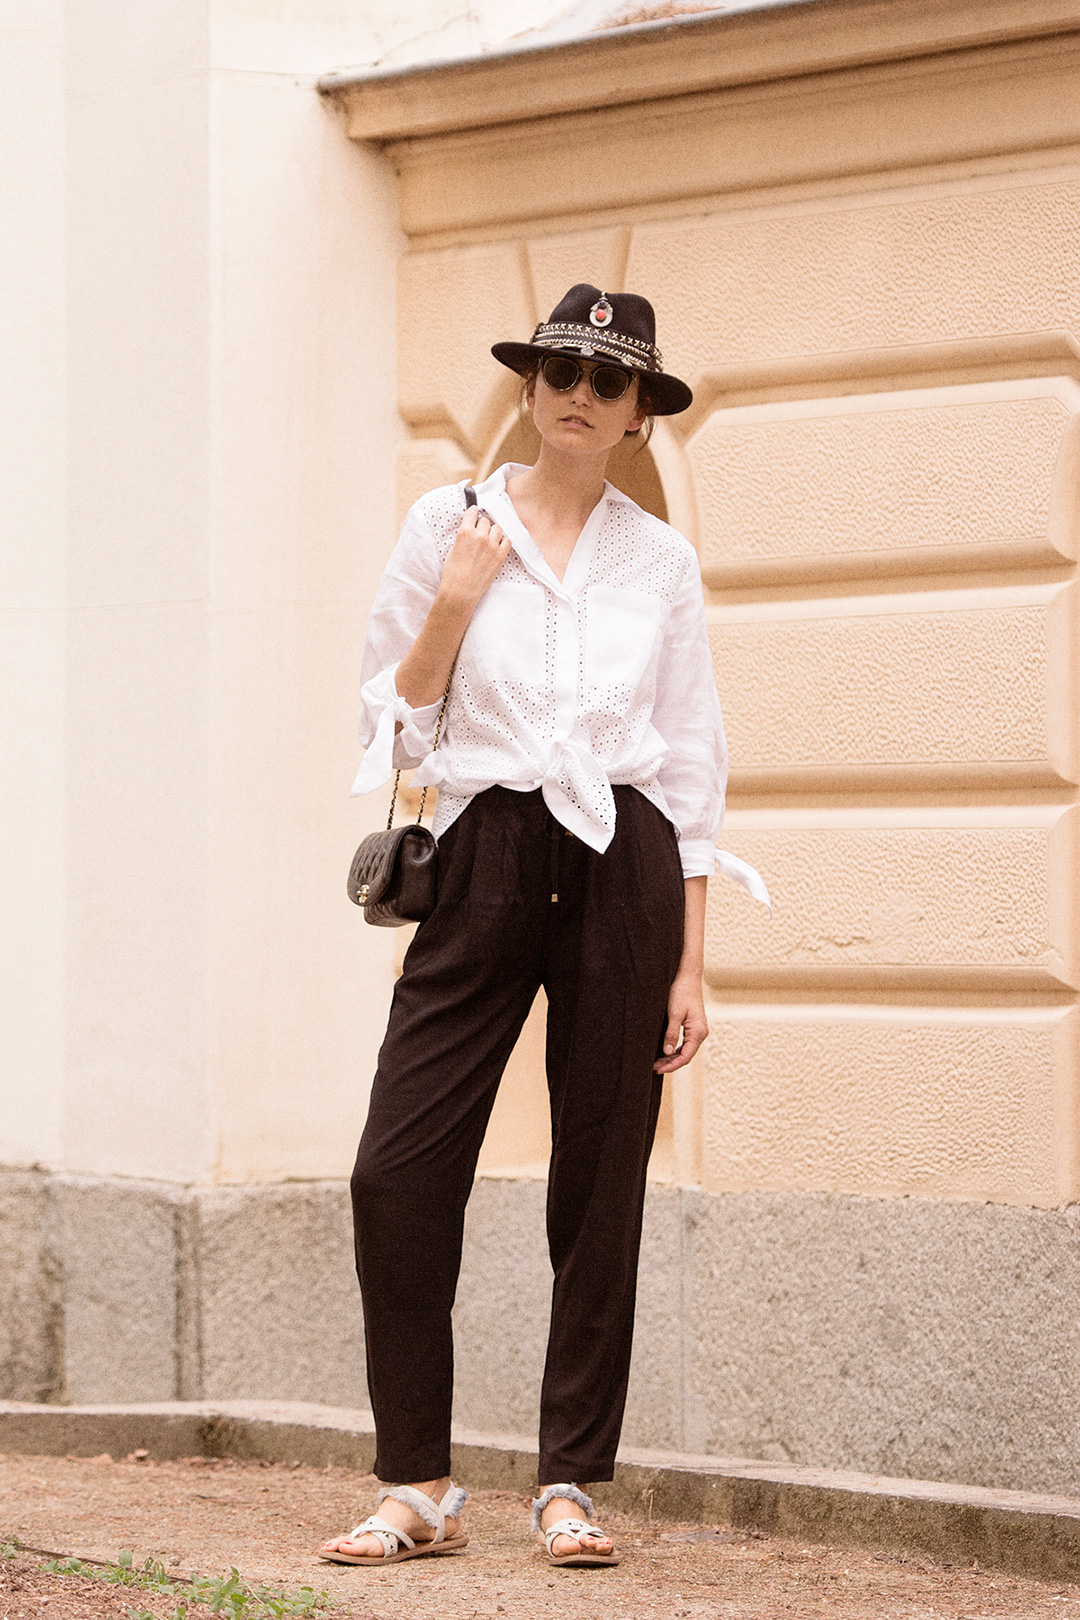 lidl-morocco-mitme-street-style-color-web-03